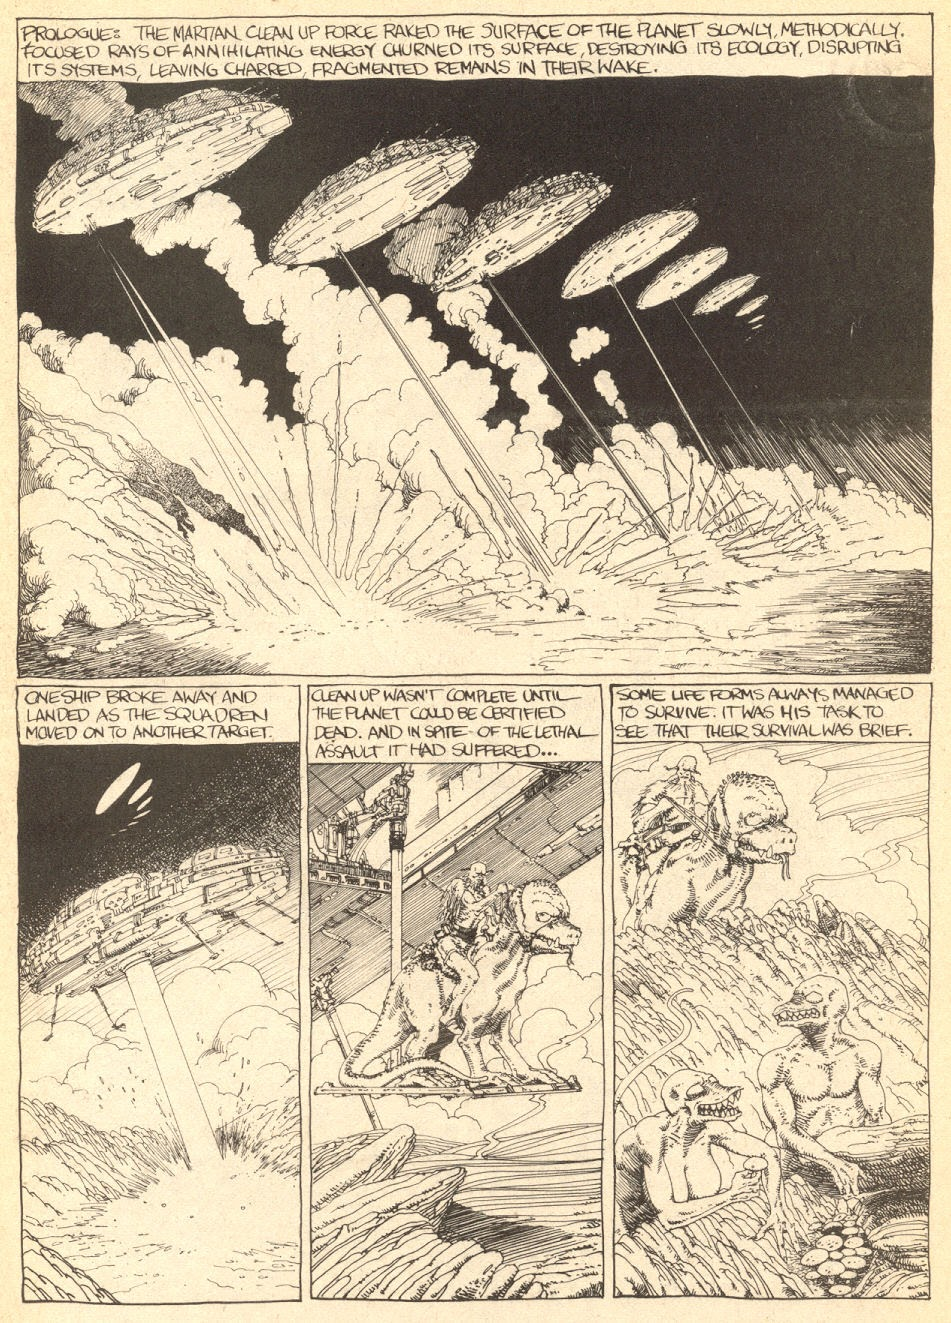 Commies from Mars: The Red Planet issue 2 - Page 4